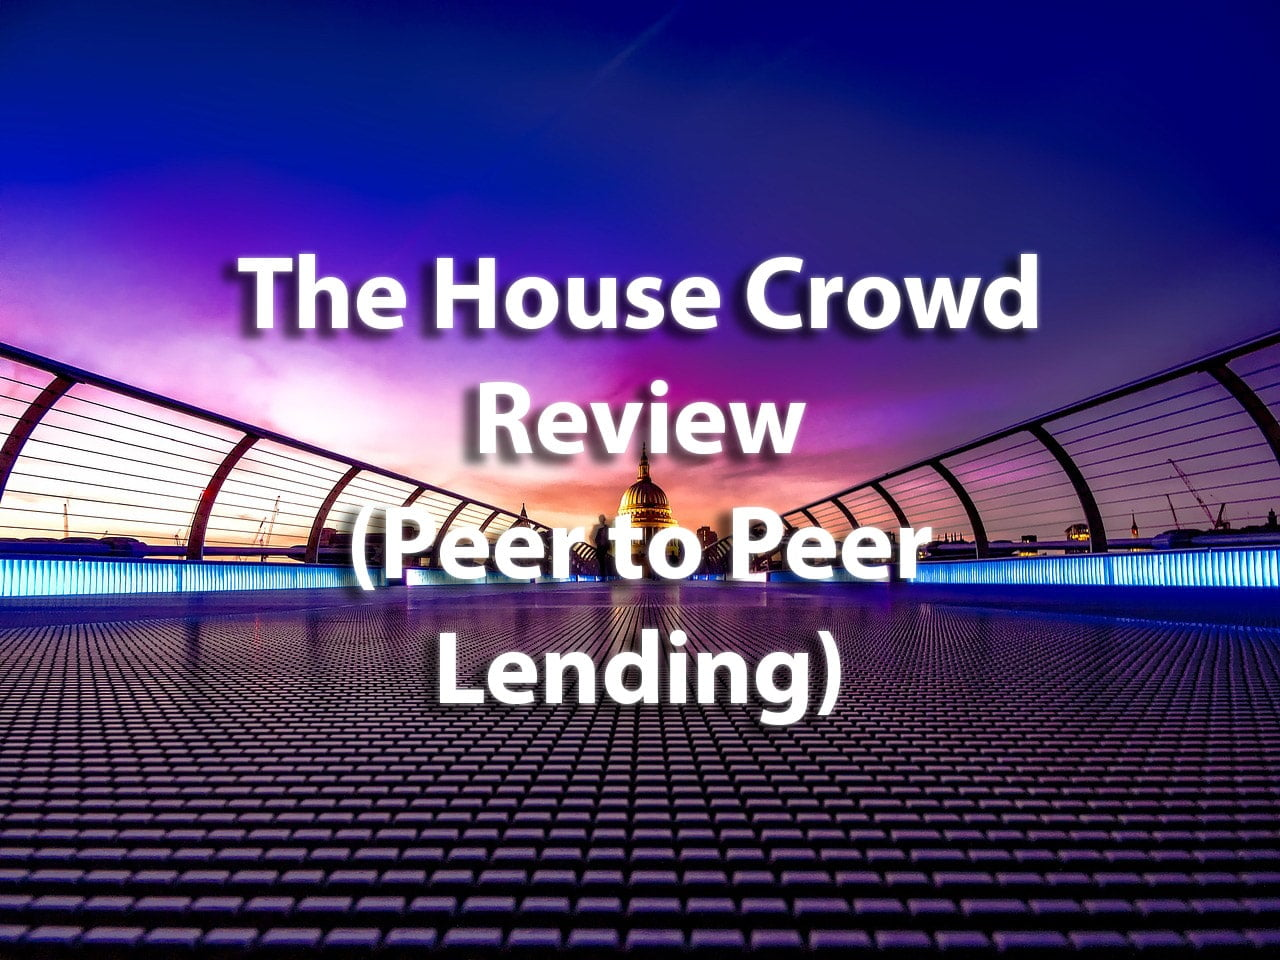 The House Crowd Review